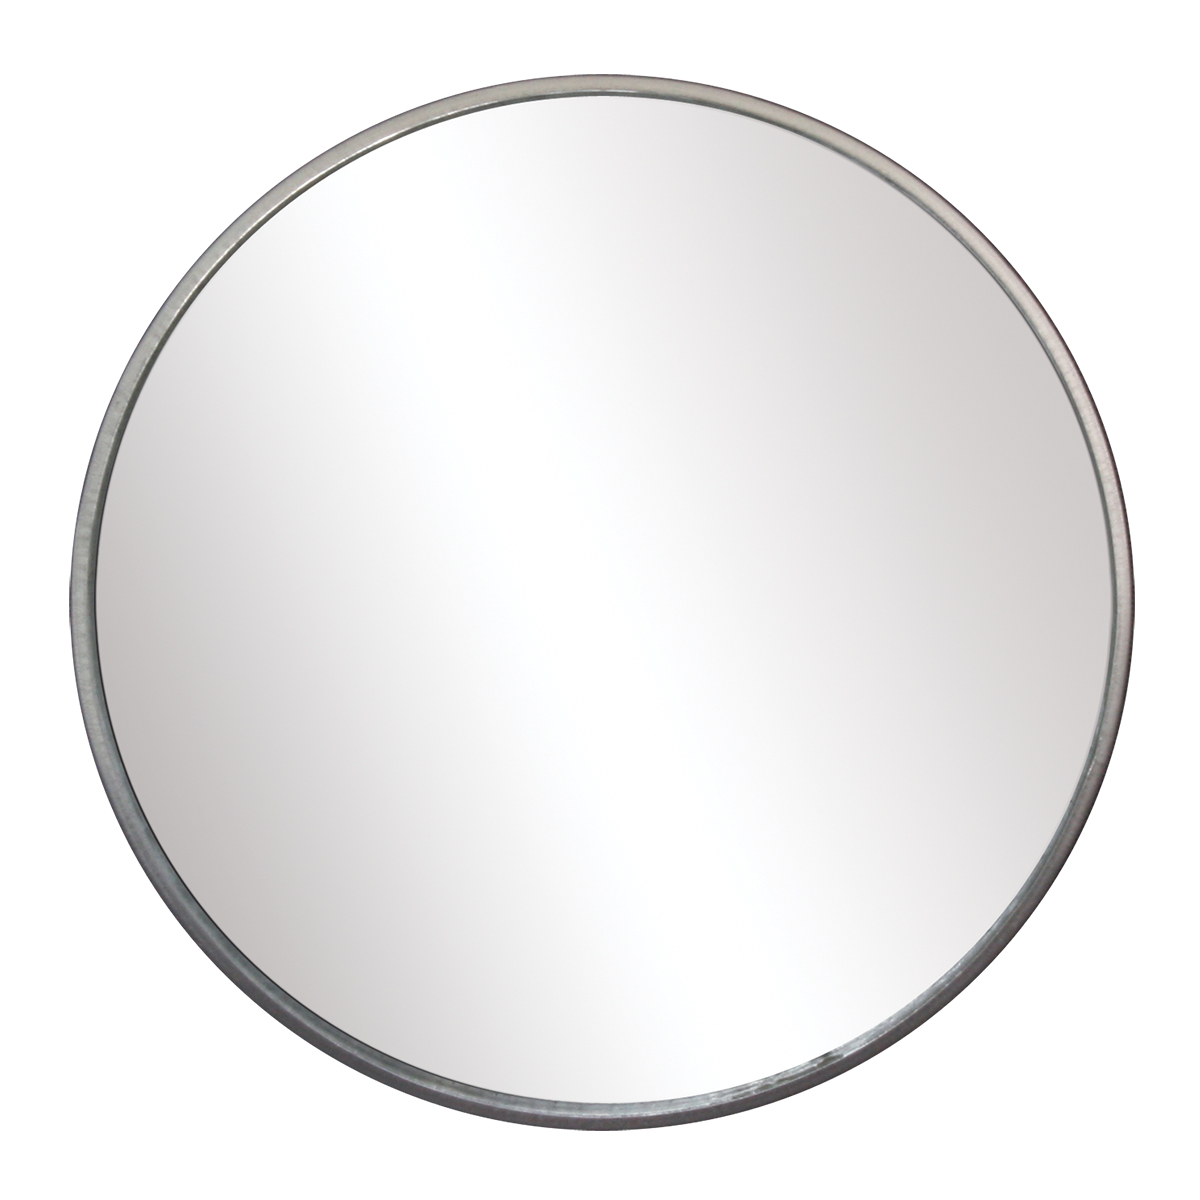 Stick On Convex Spot Mirrors Grand General Auto Parts